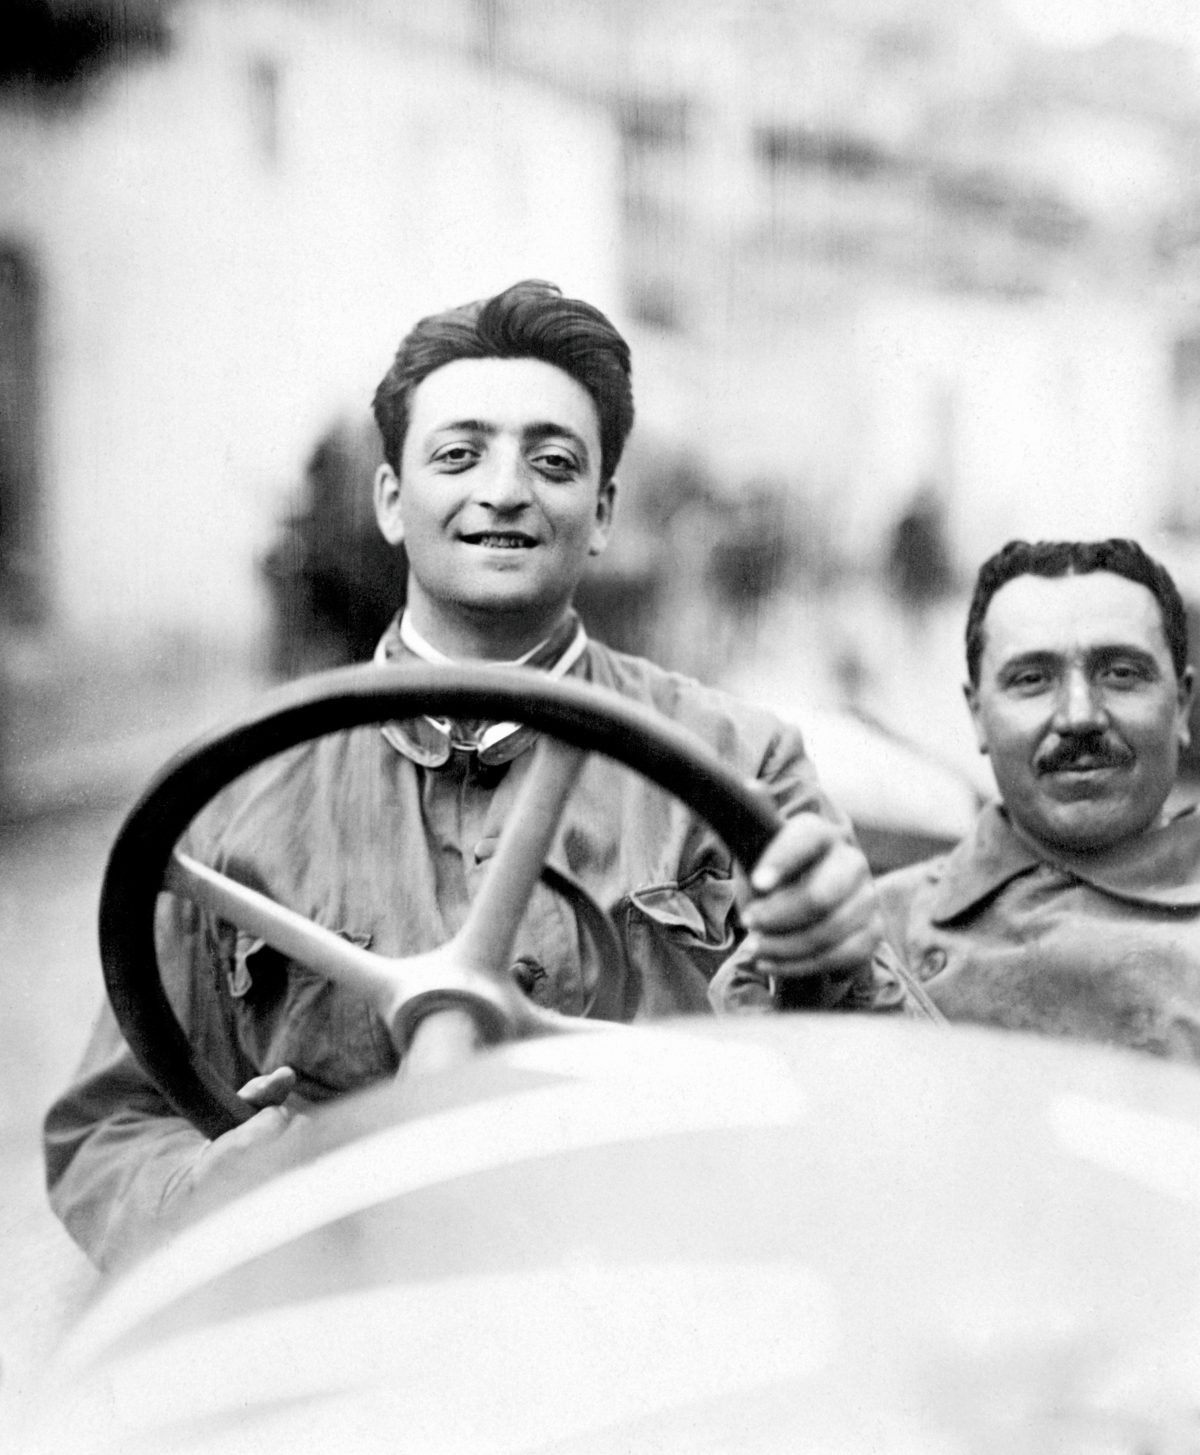 Enzo Ferrari at the Targa Florio